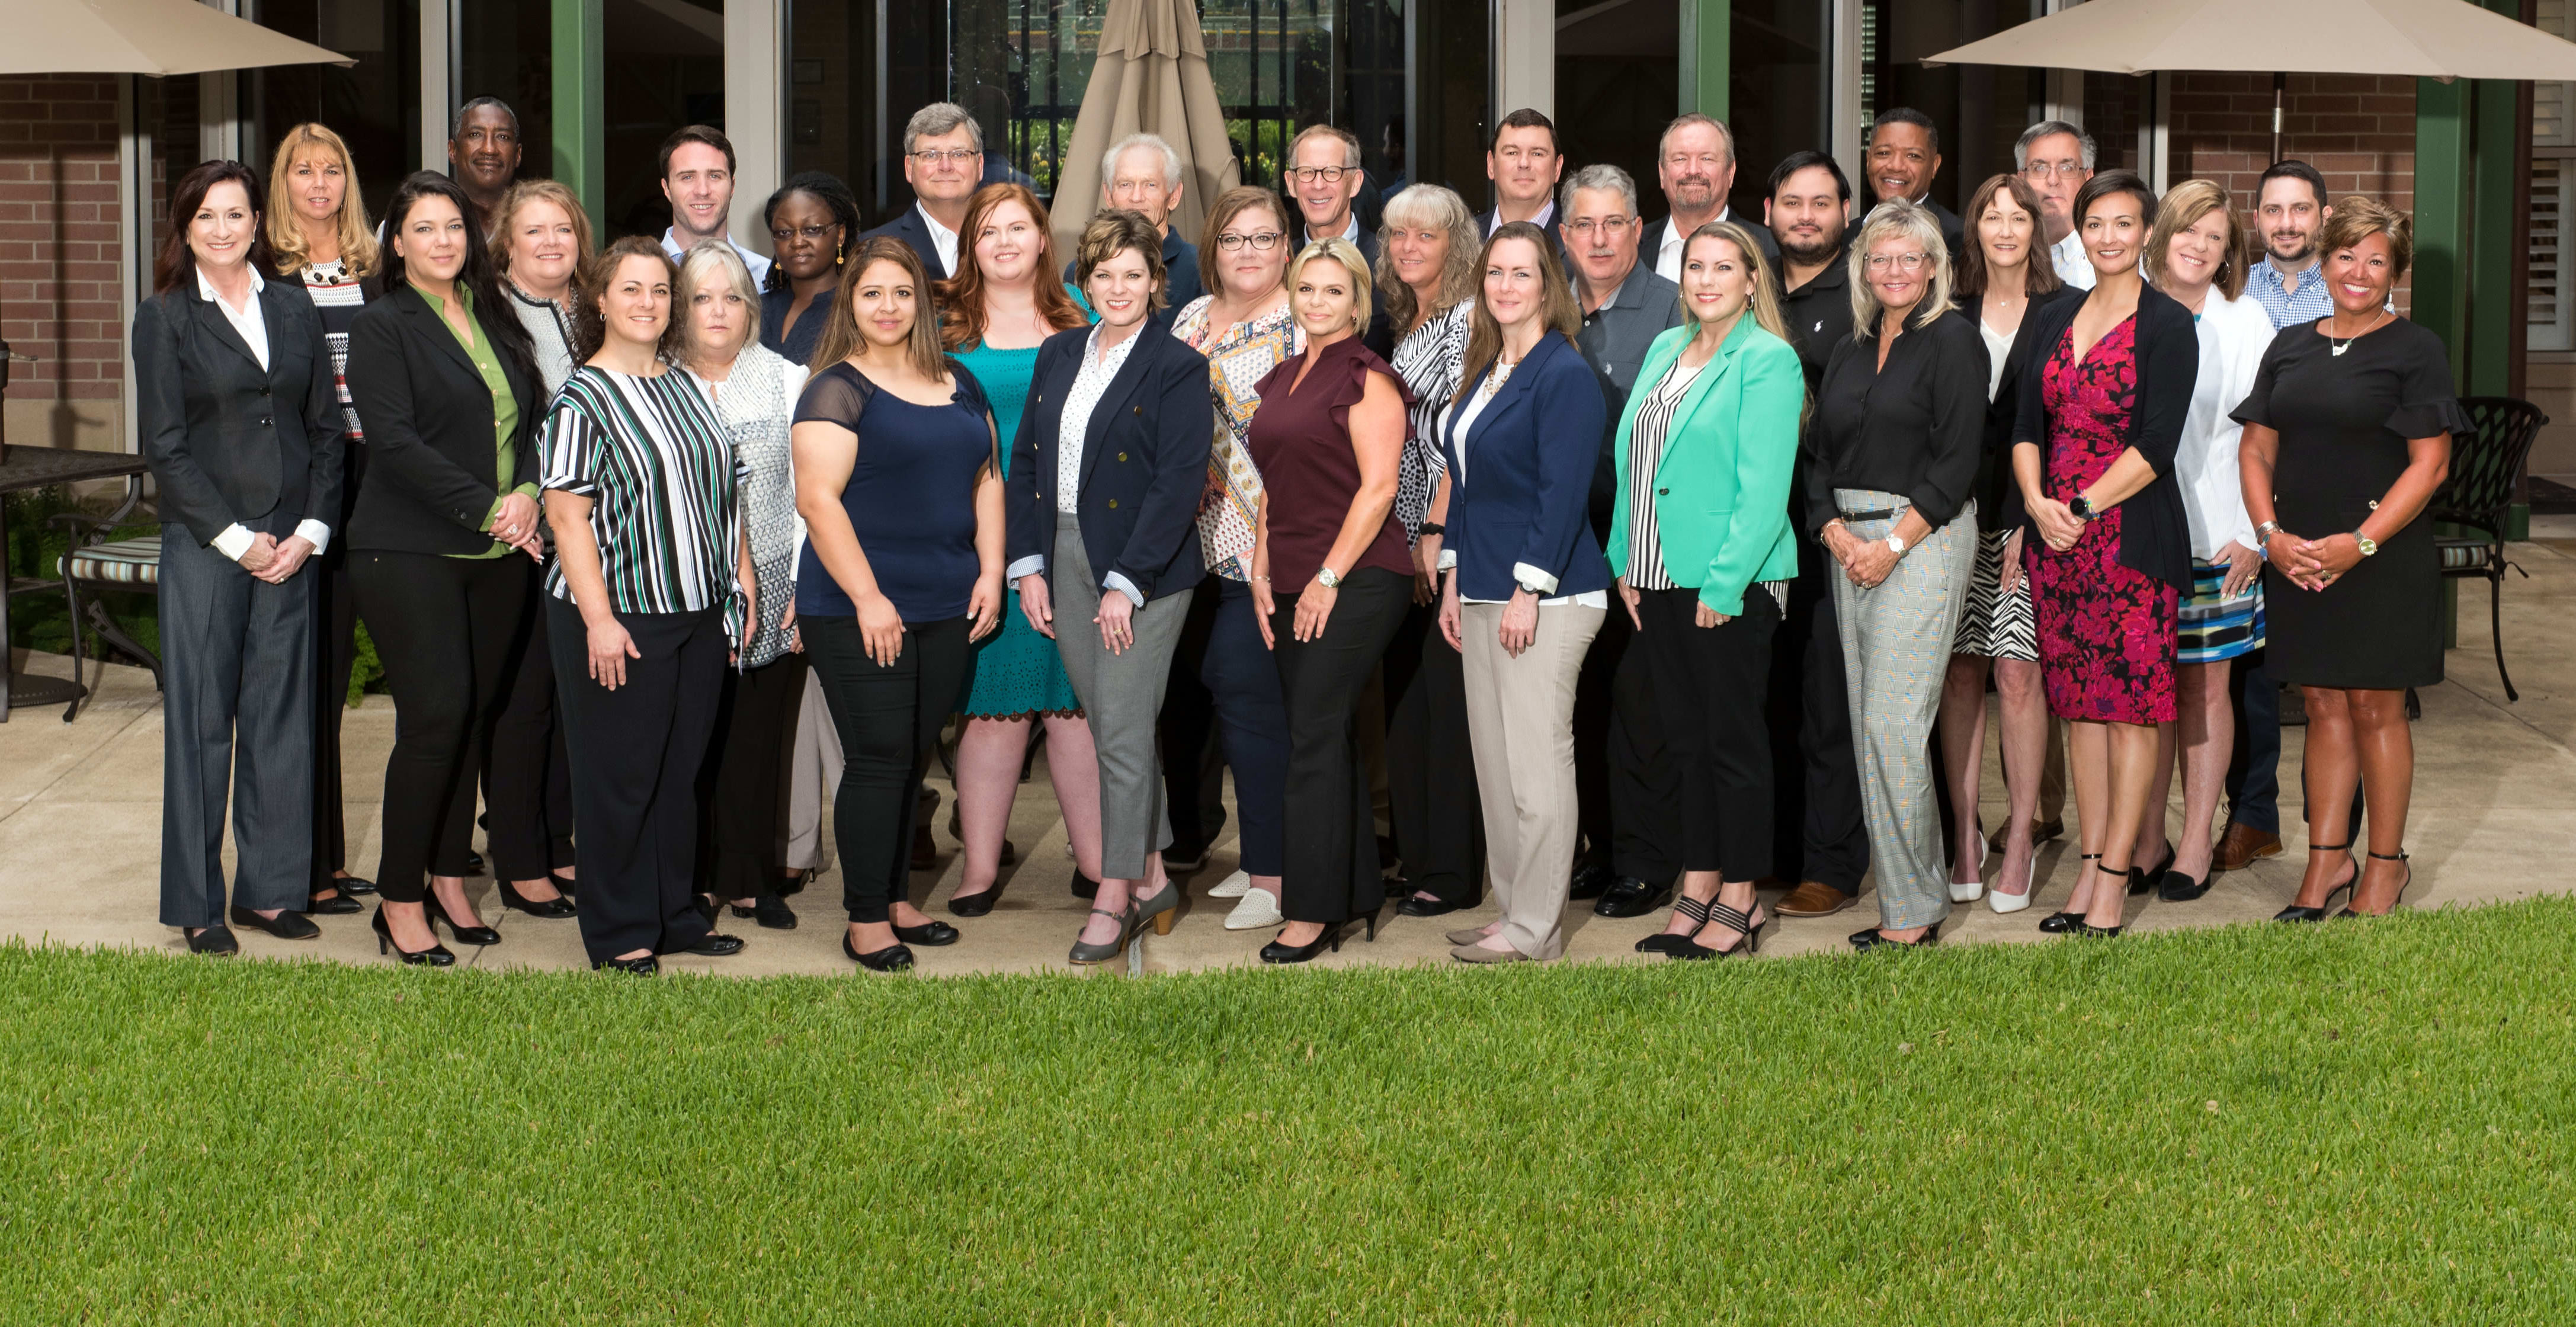 Professional and caring team at Autumn Grove Cottage at Blanco in San Antonio, Texas